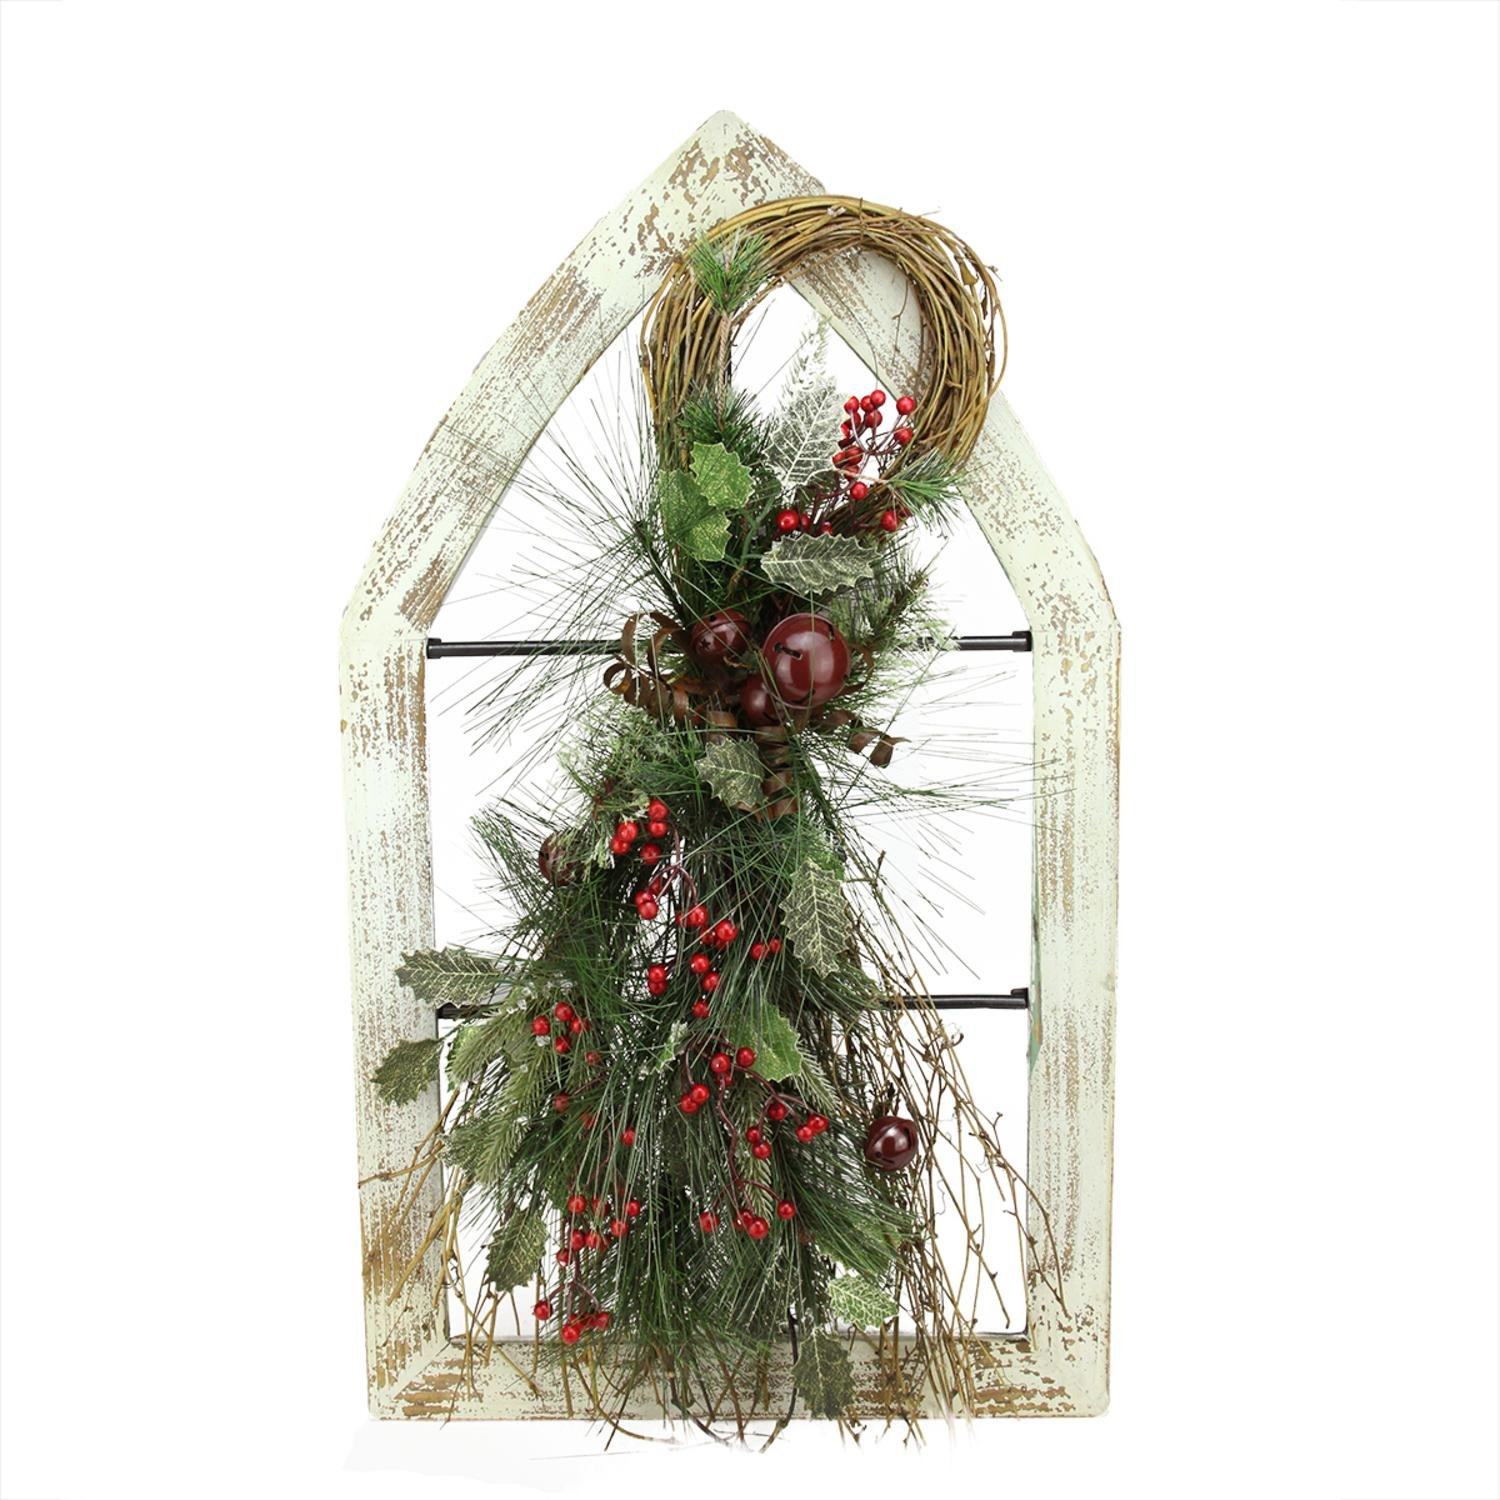 Gerson Washed Window Frame with Mixed Pine & Berry Swag Christmas Wall Decoration, 29.5'', White